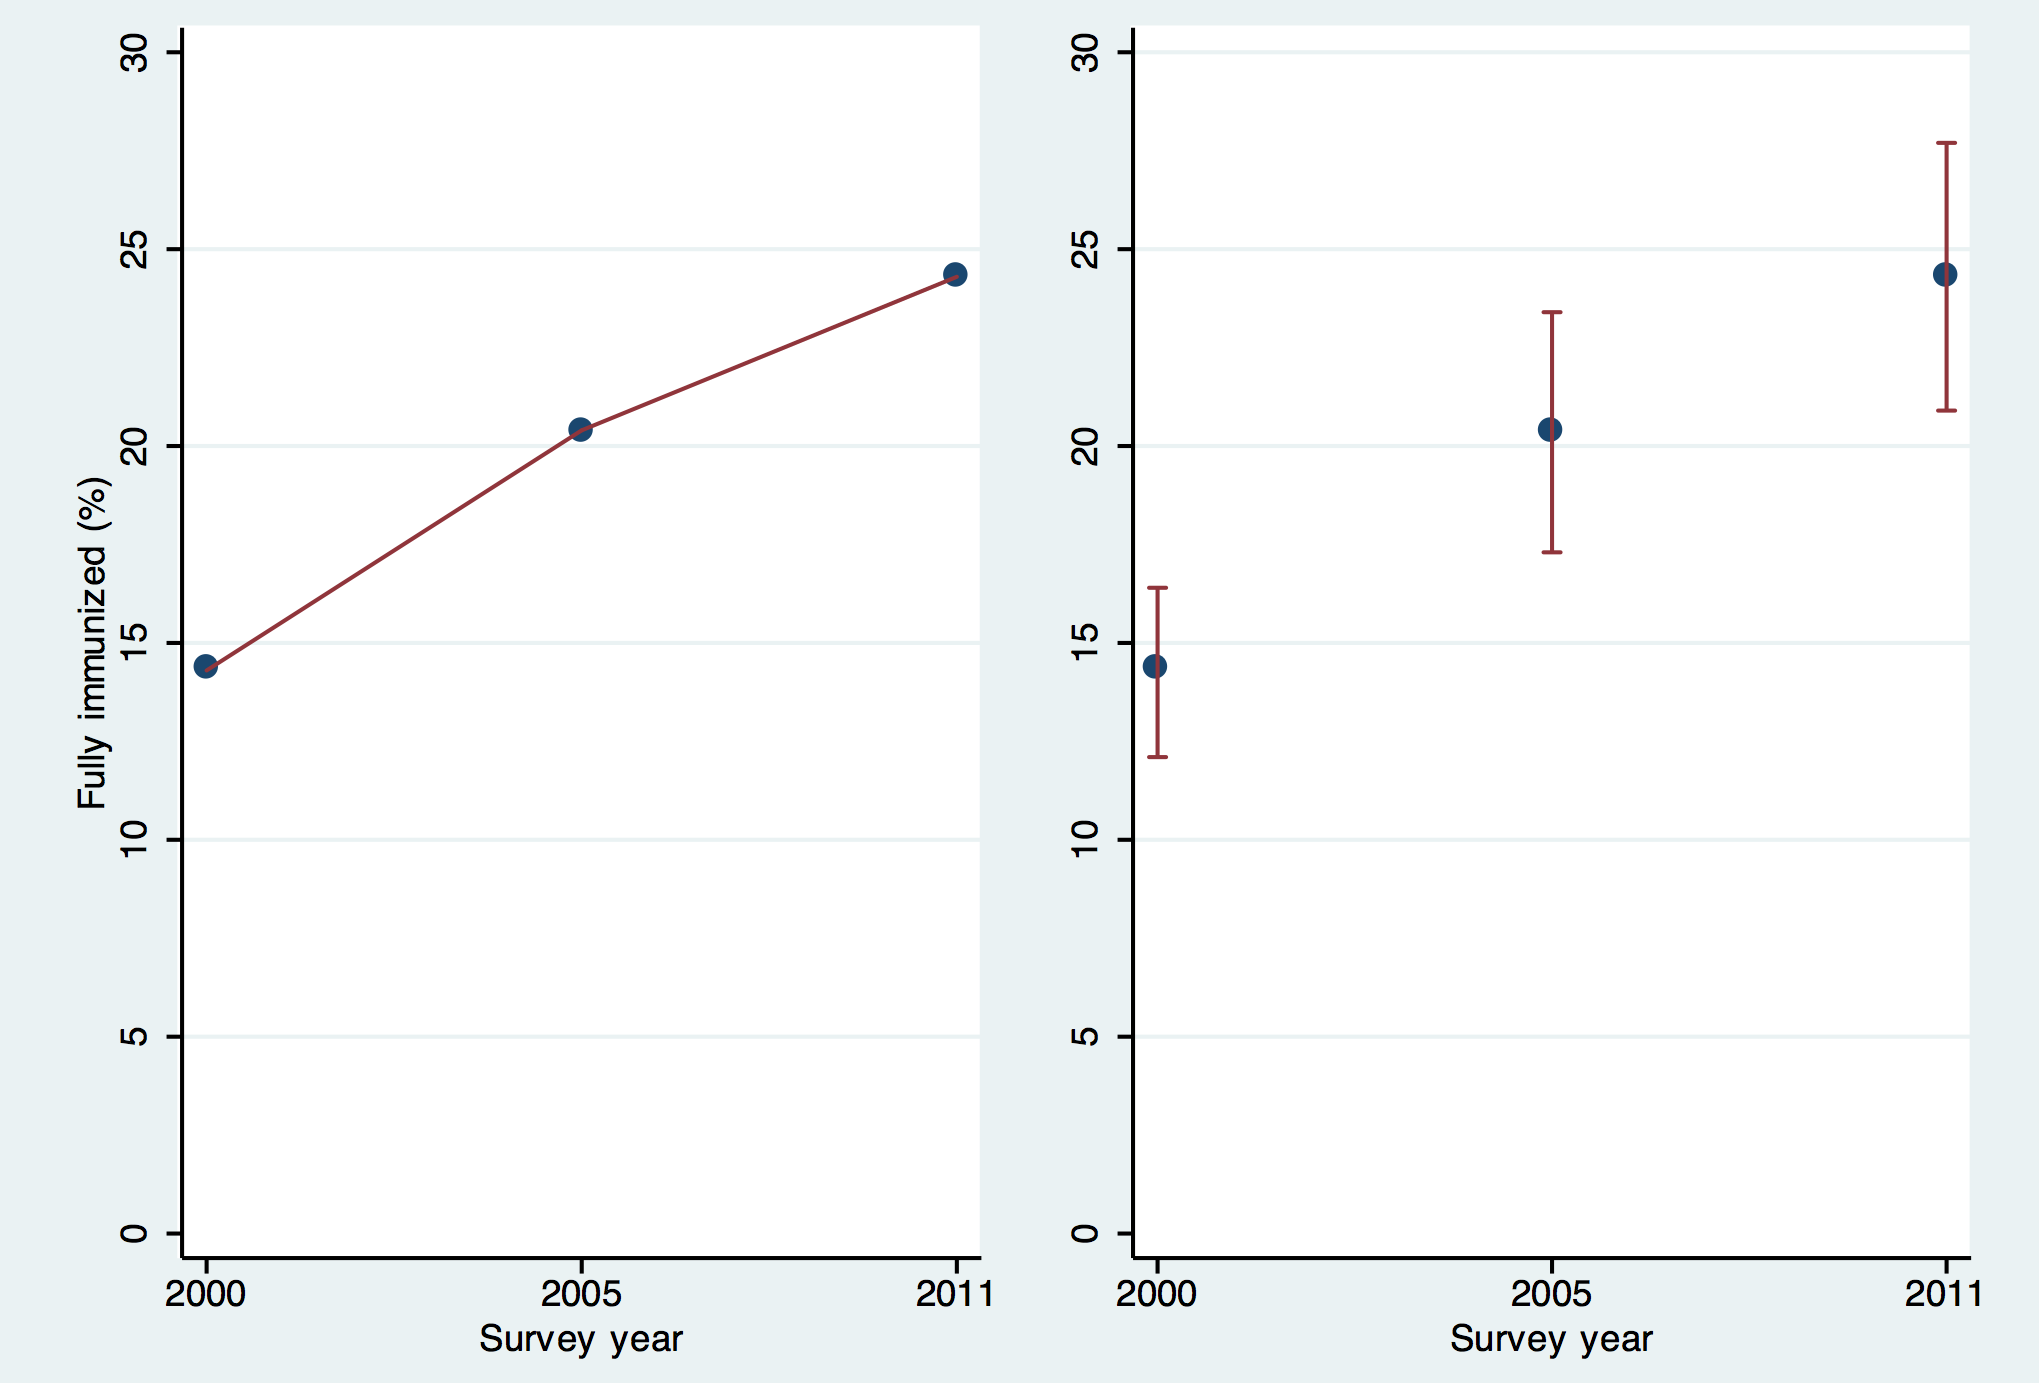 Two ways of looking at coverage of full immunization in Ethiopia—with and without confidence intervals.